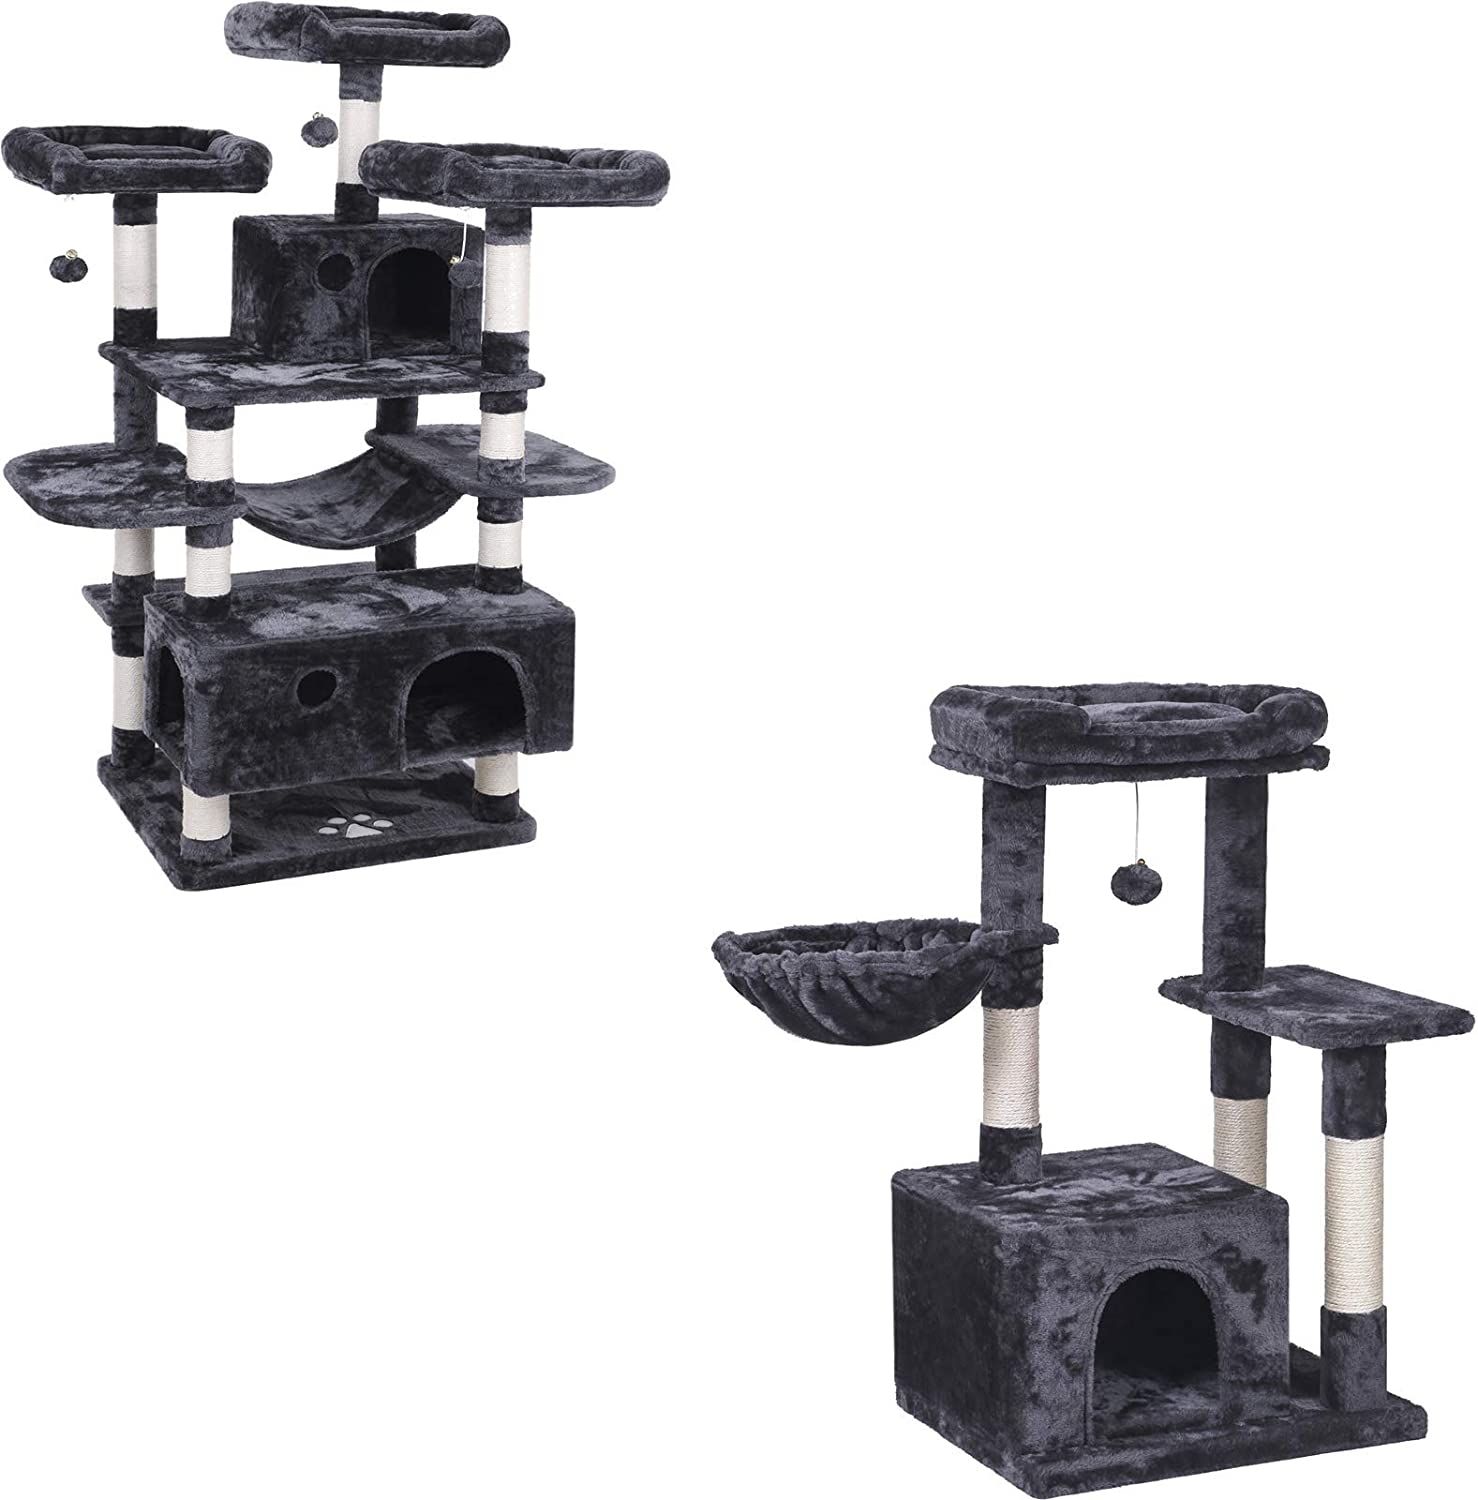 BEWISHOME Large Cat Tree Condo Bundle with Small Cat Tower with Sisal Scratching Posts Perches Houses Cat Furniture Kitty Activity Center Kitten Play House MMJ0311